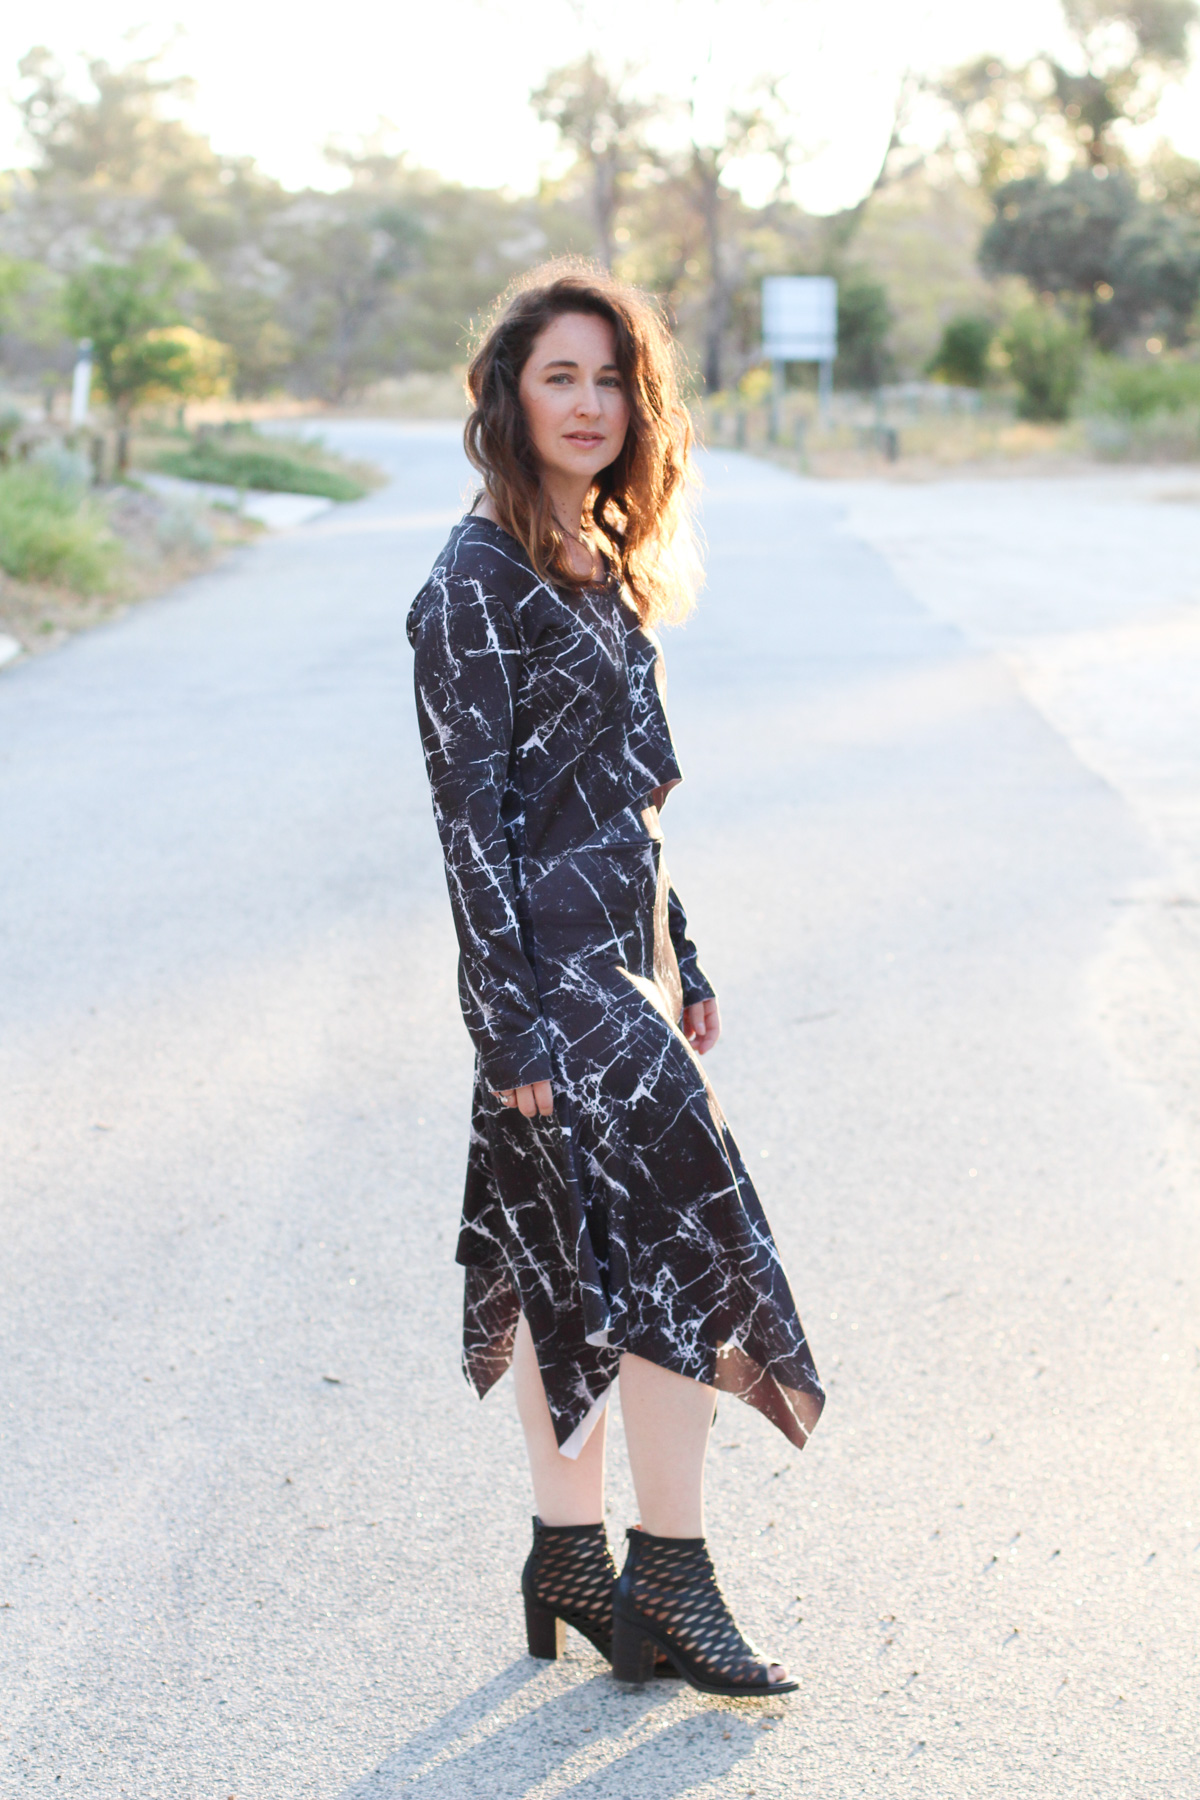 Megan Nielsen Briar top and Axel skirt in marble print scuba from Mood Fabrics